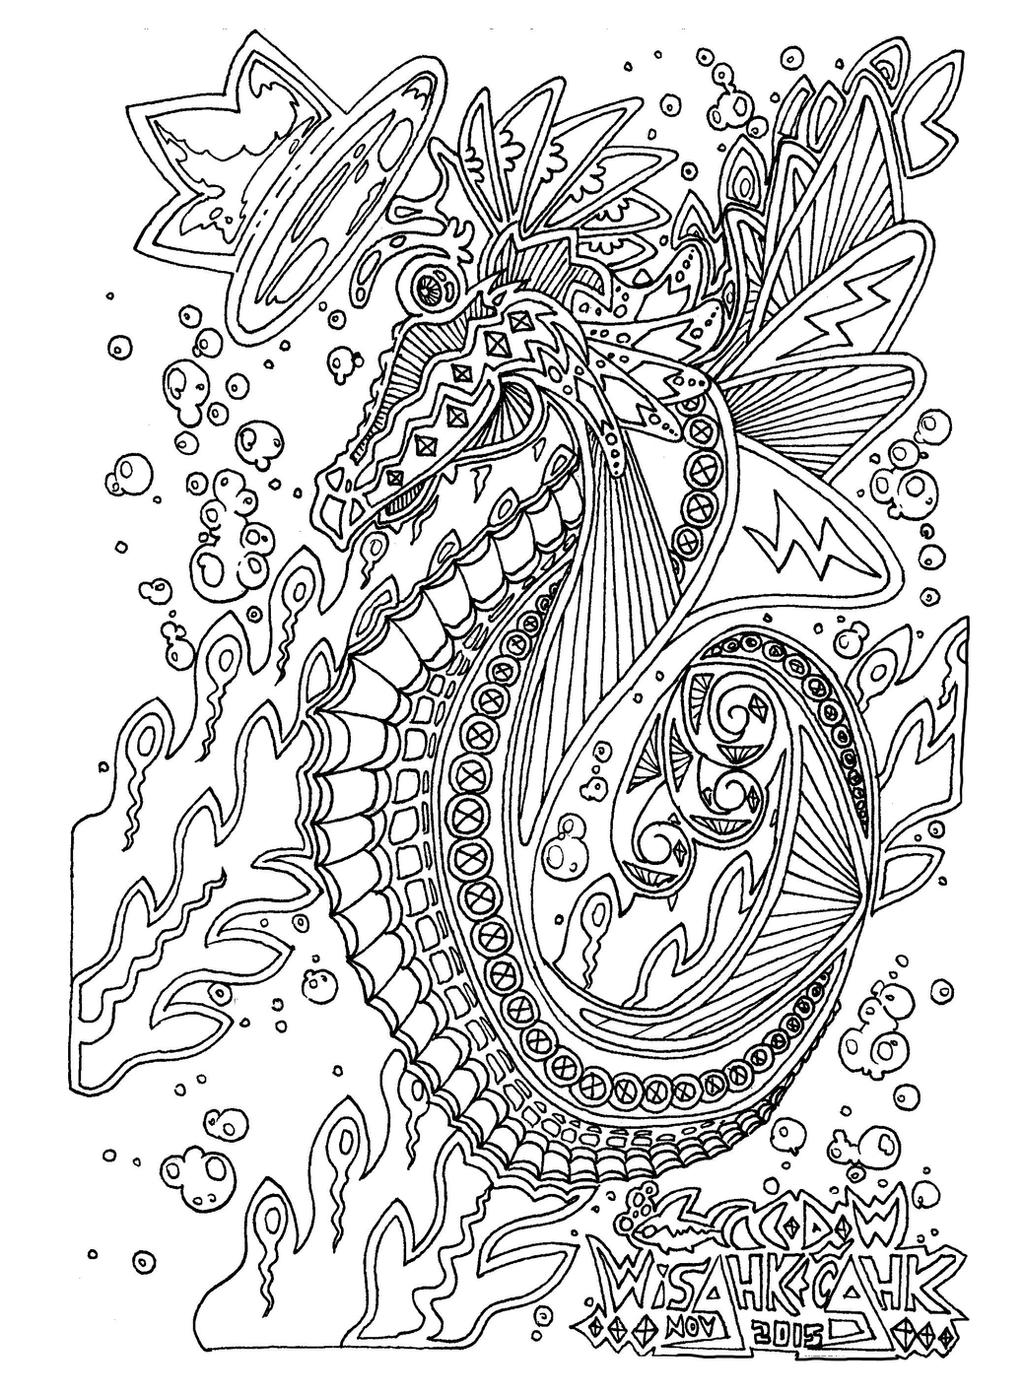 Sensational mr seahorse by wisahkecahk on deviantart for Mister seahorse coloring page